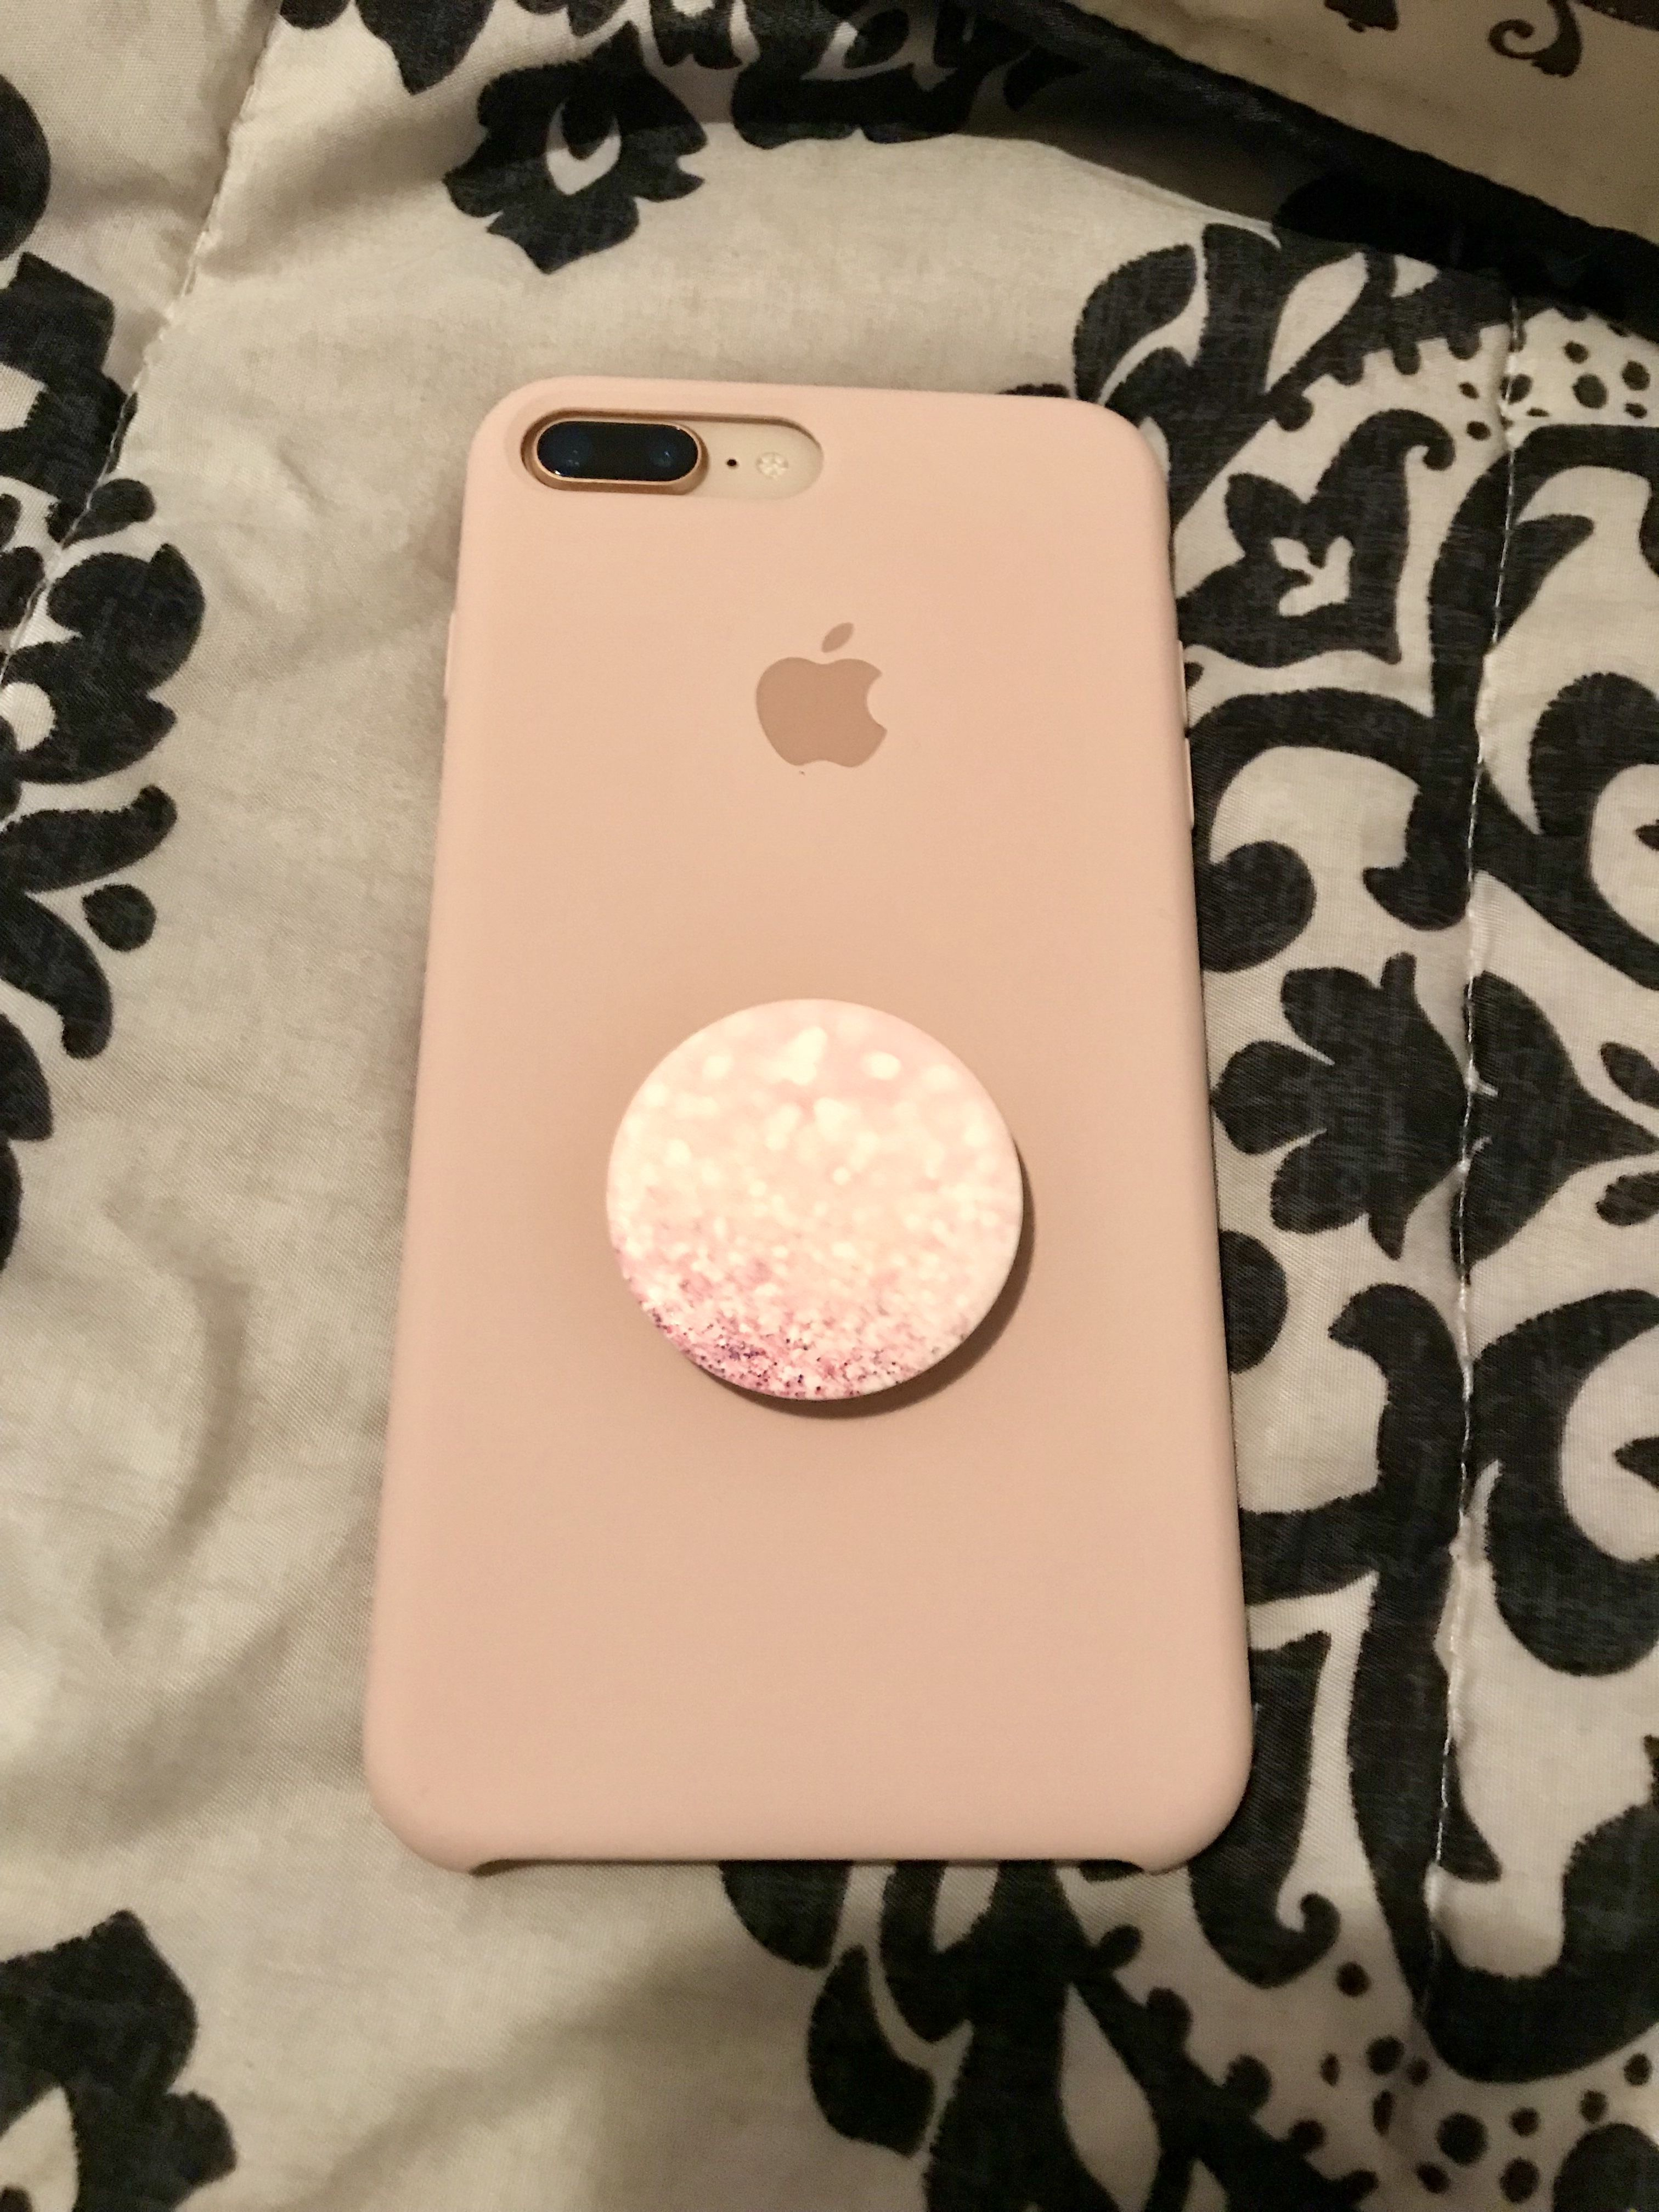 Iphone 8 Plus Gold With Pink Sand Apple Silicone Case Pink Blush Pop Socket Unicorn Iphone Case Iphone Phone Cases Pink Iphone